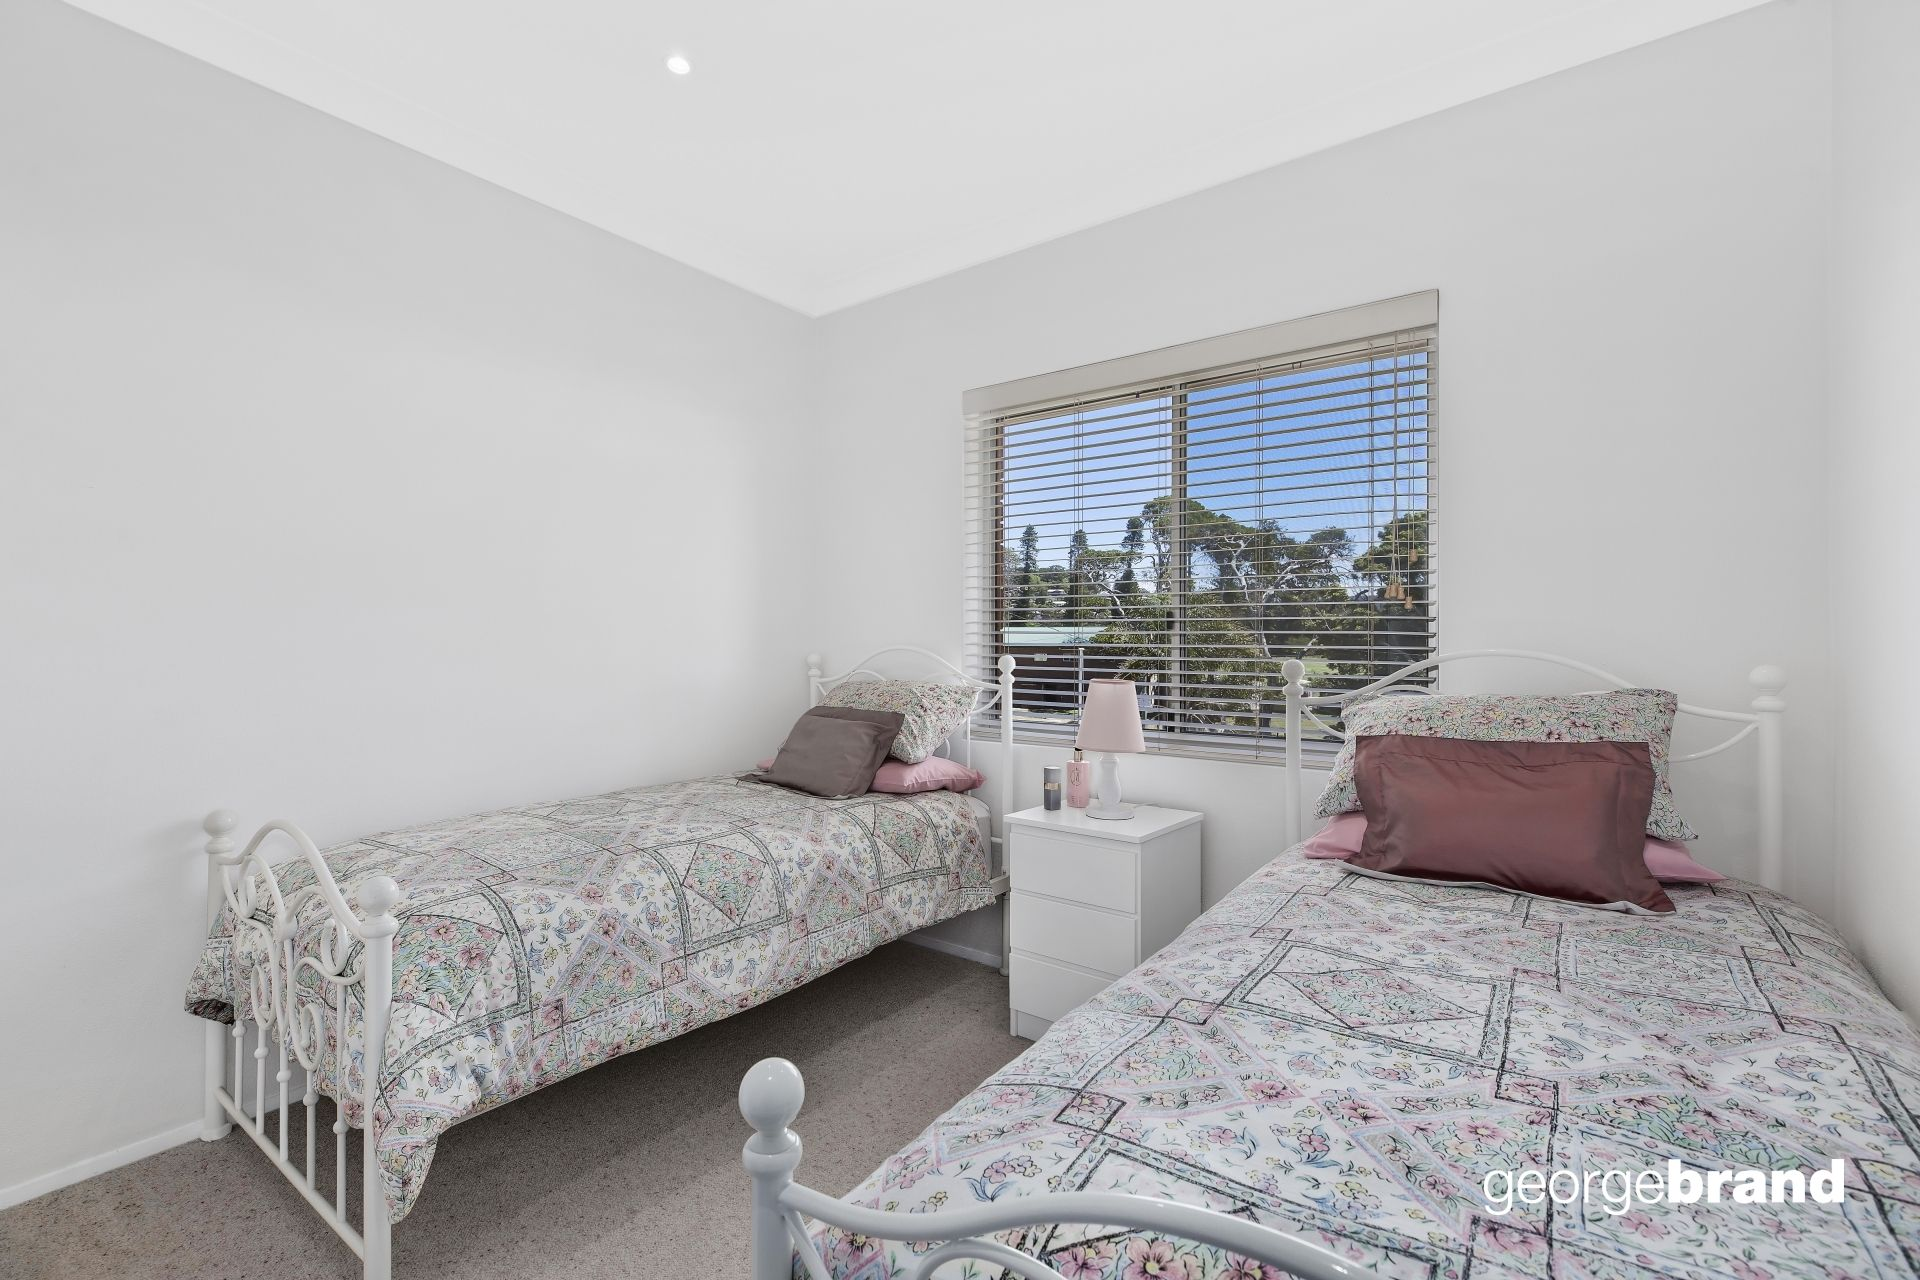 Avoca Beach Real Estate: HIDDEN SANCTUARY IN A PRIME BEACHSIDE POSITION